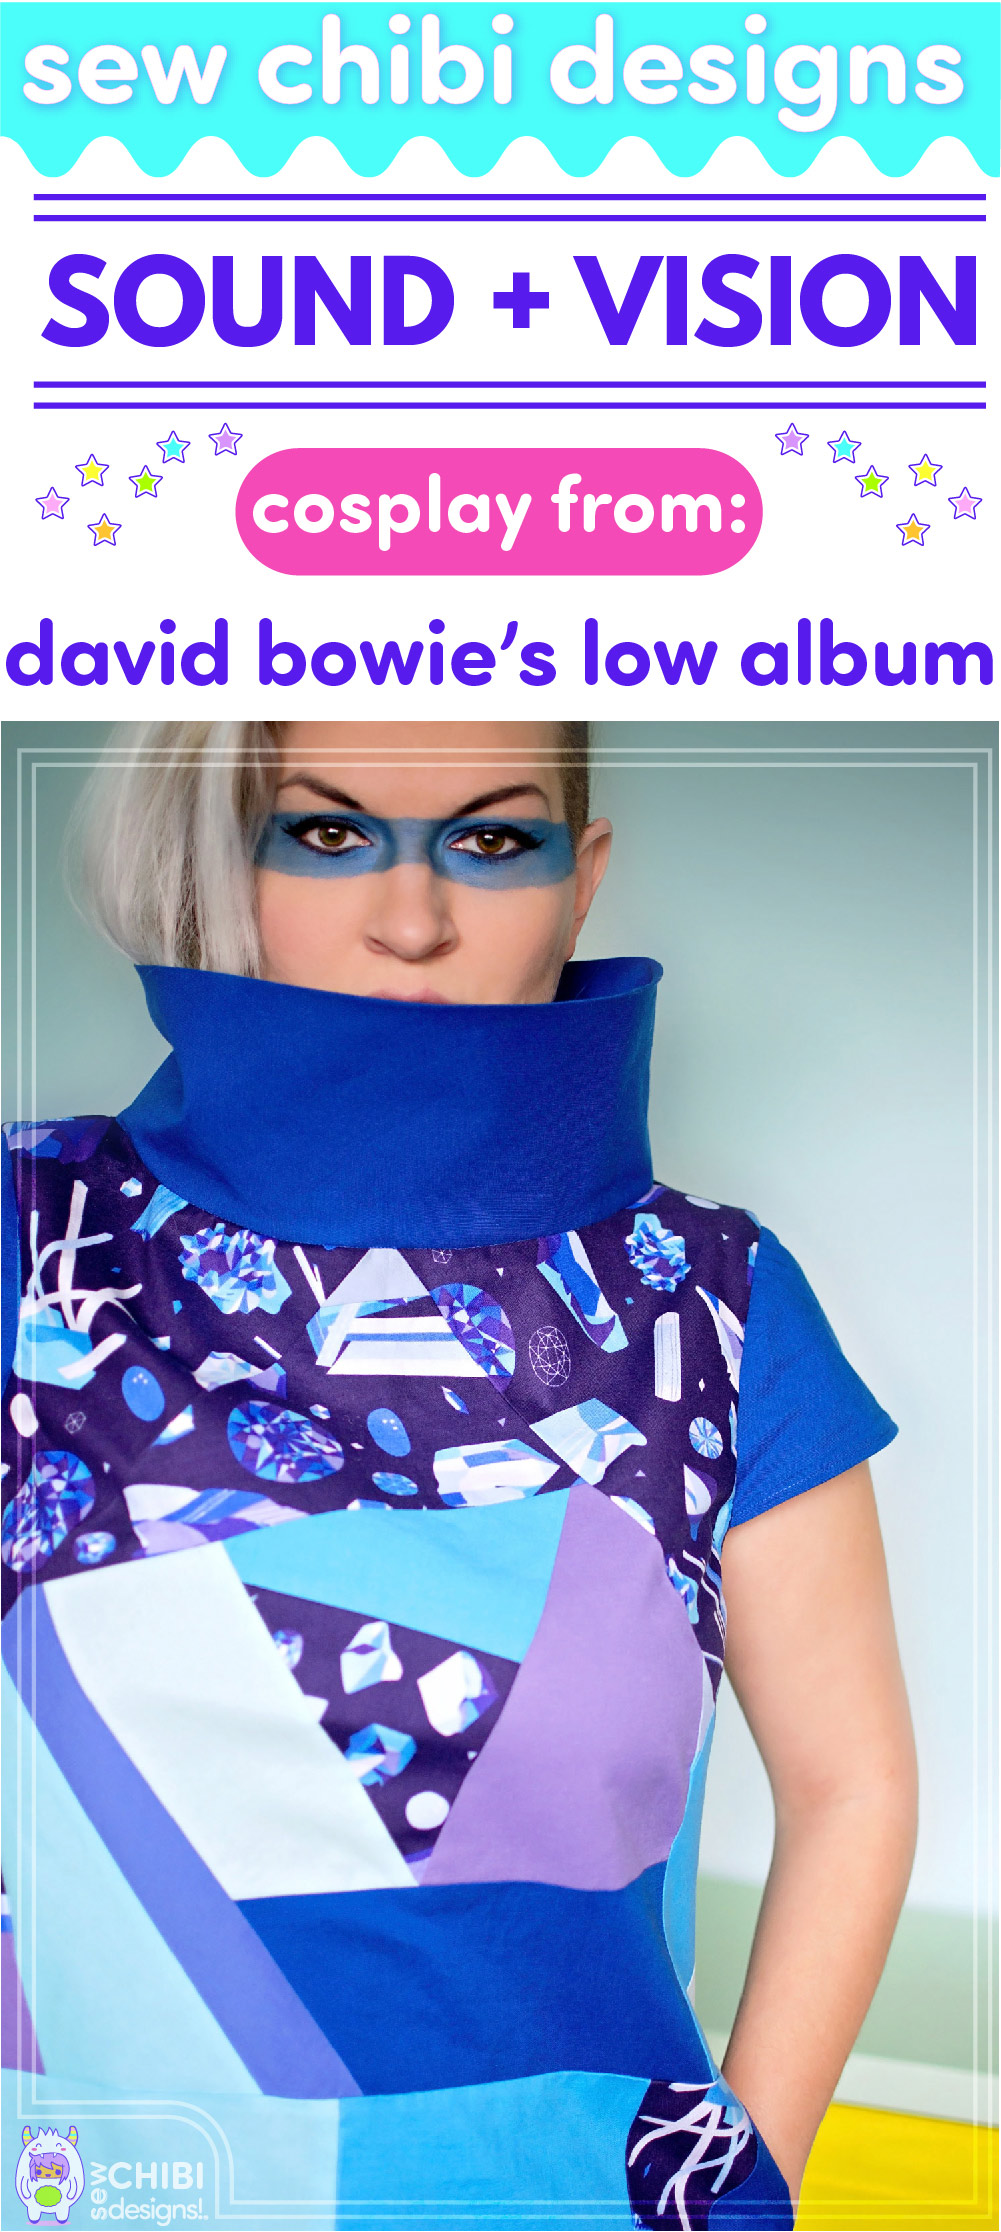 David Bowie's Sound and Vision cosplay sewn by Sew Chibi Designs for Sew Geeky